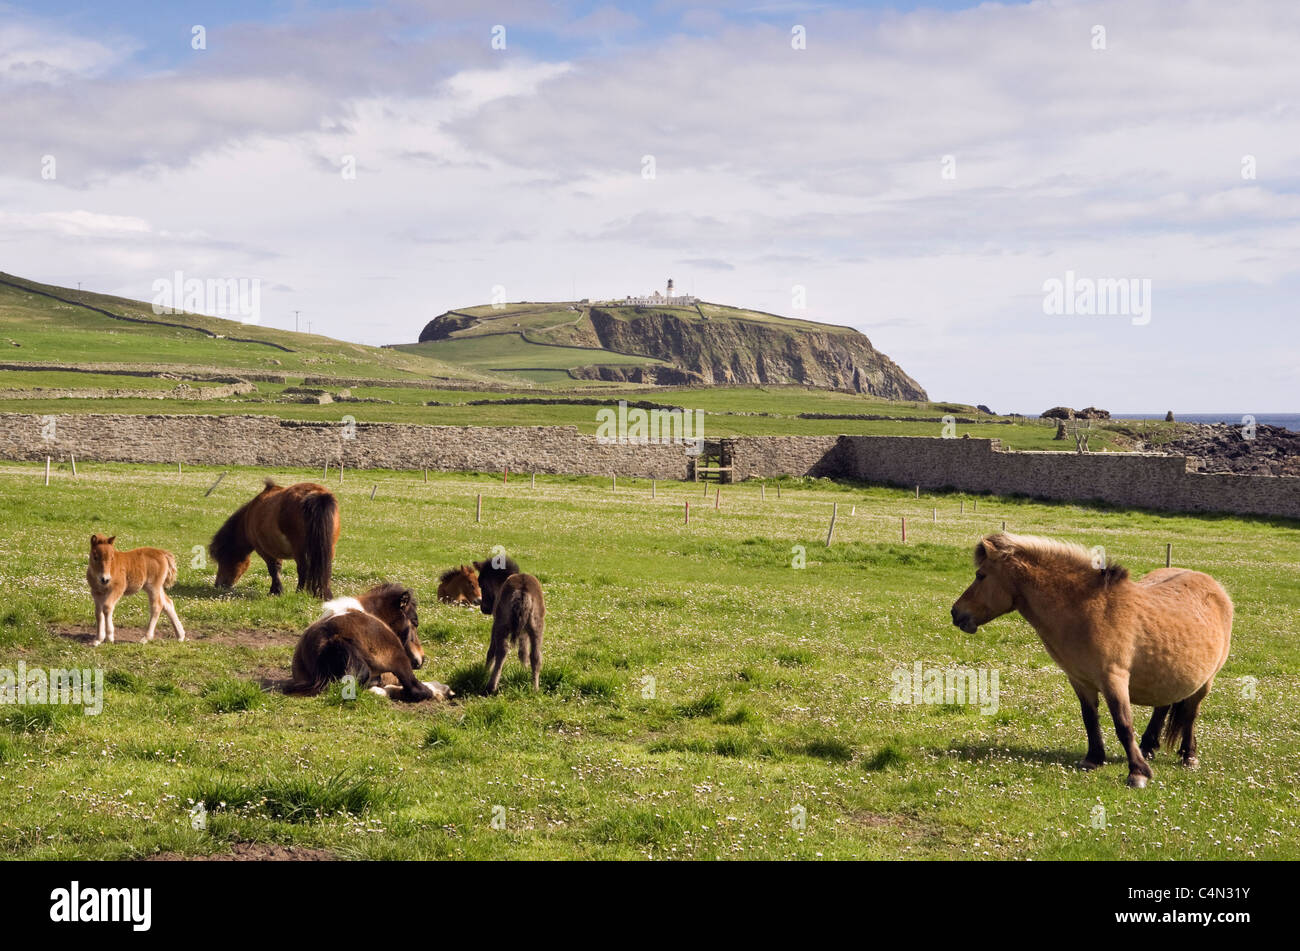 Sumburgh, Shetland Islands, Scotland, UK. Shetland ponies mares with young foals in a field - Stock Image